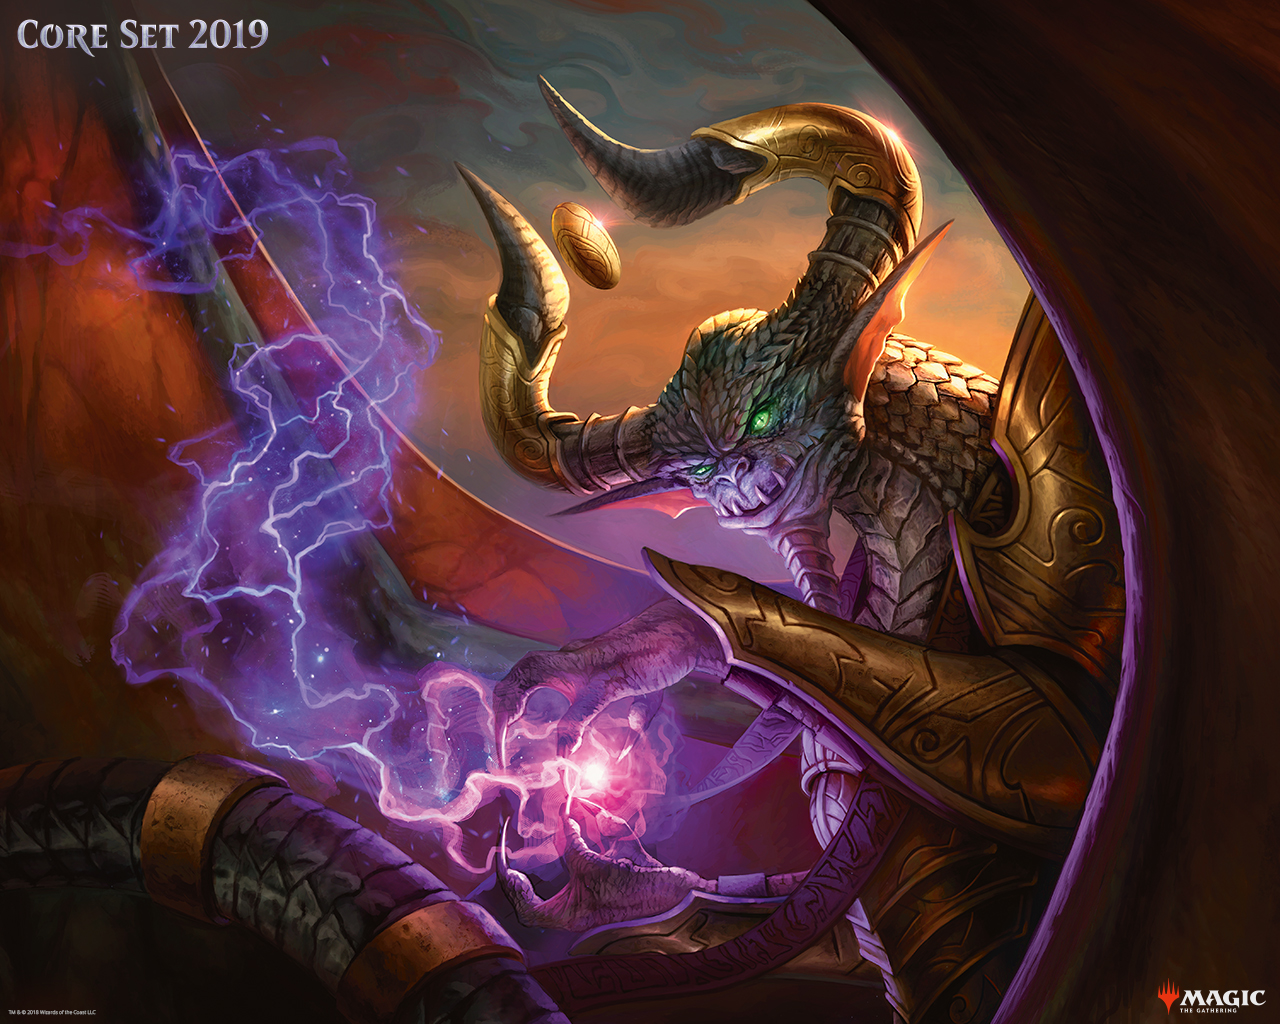 Core Set 2019 Nicol Bolas